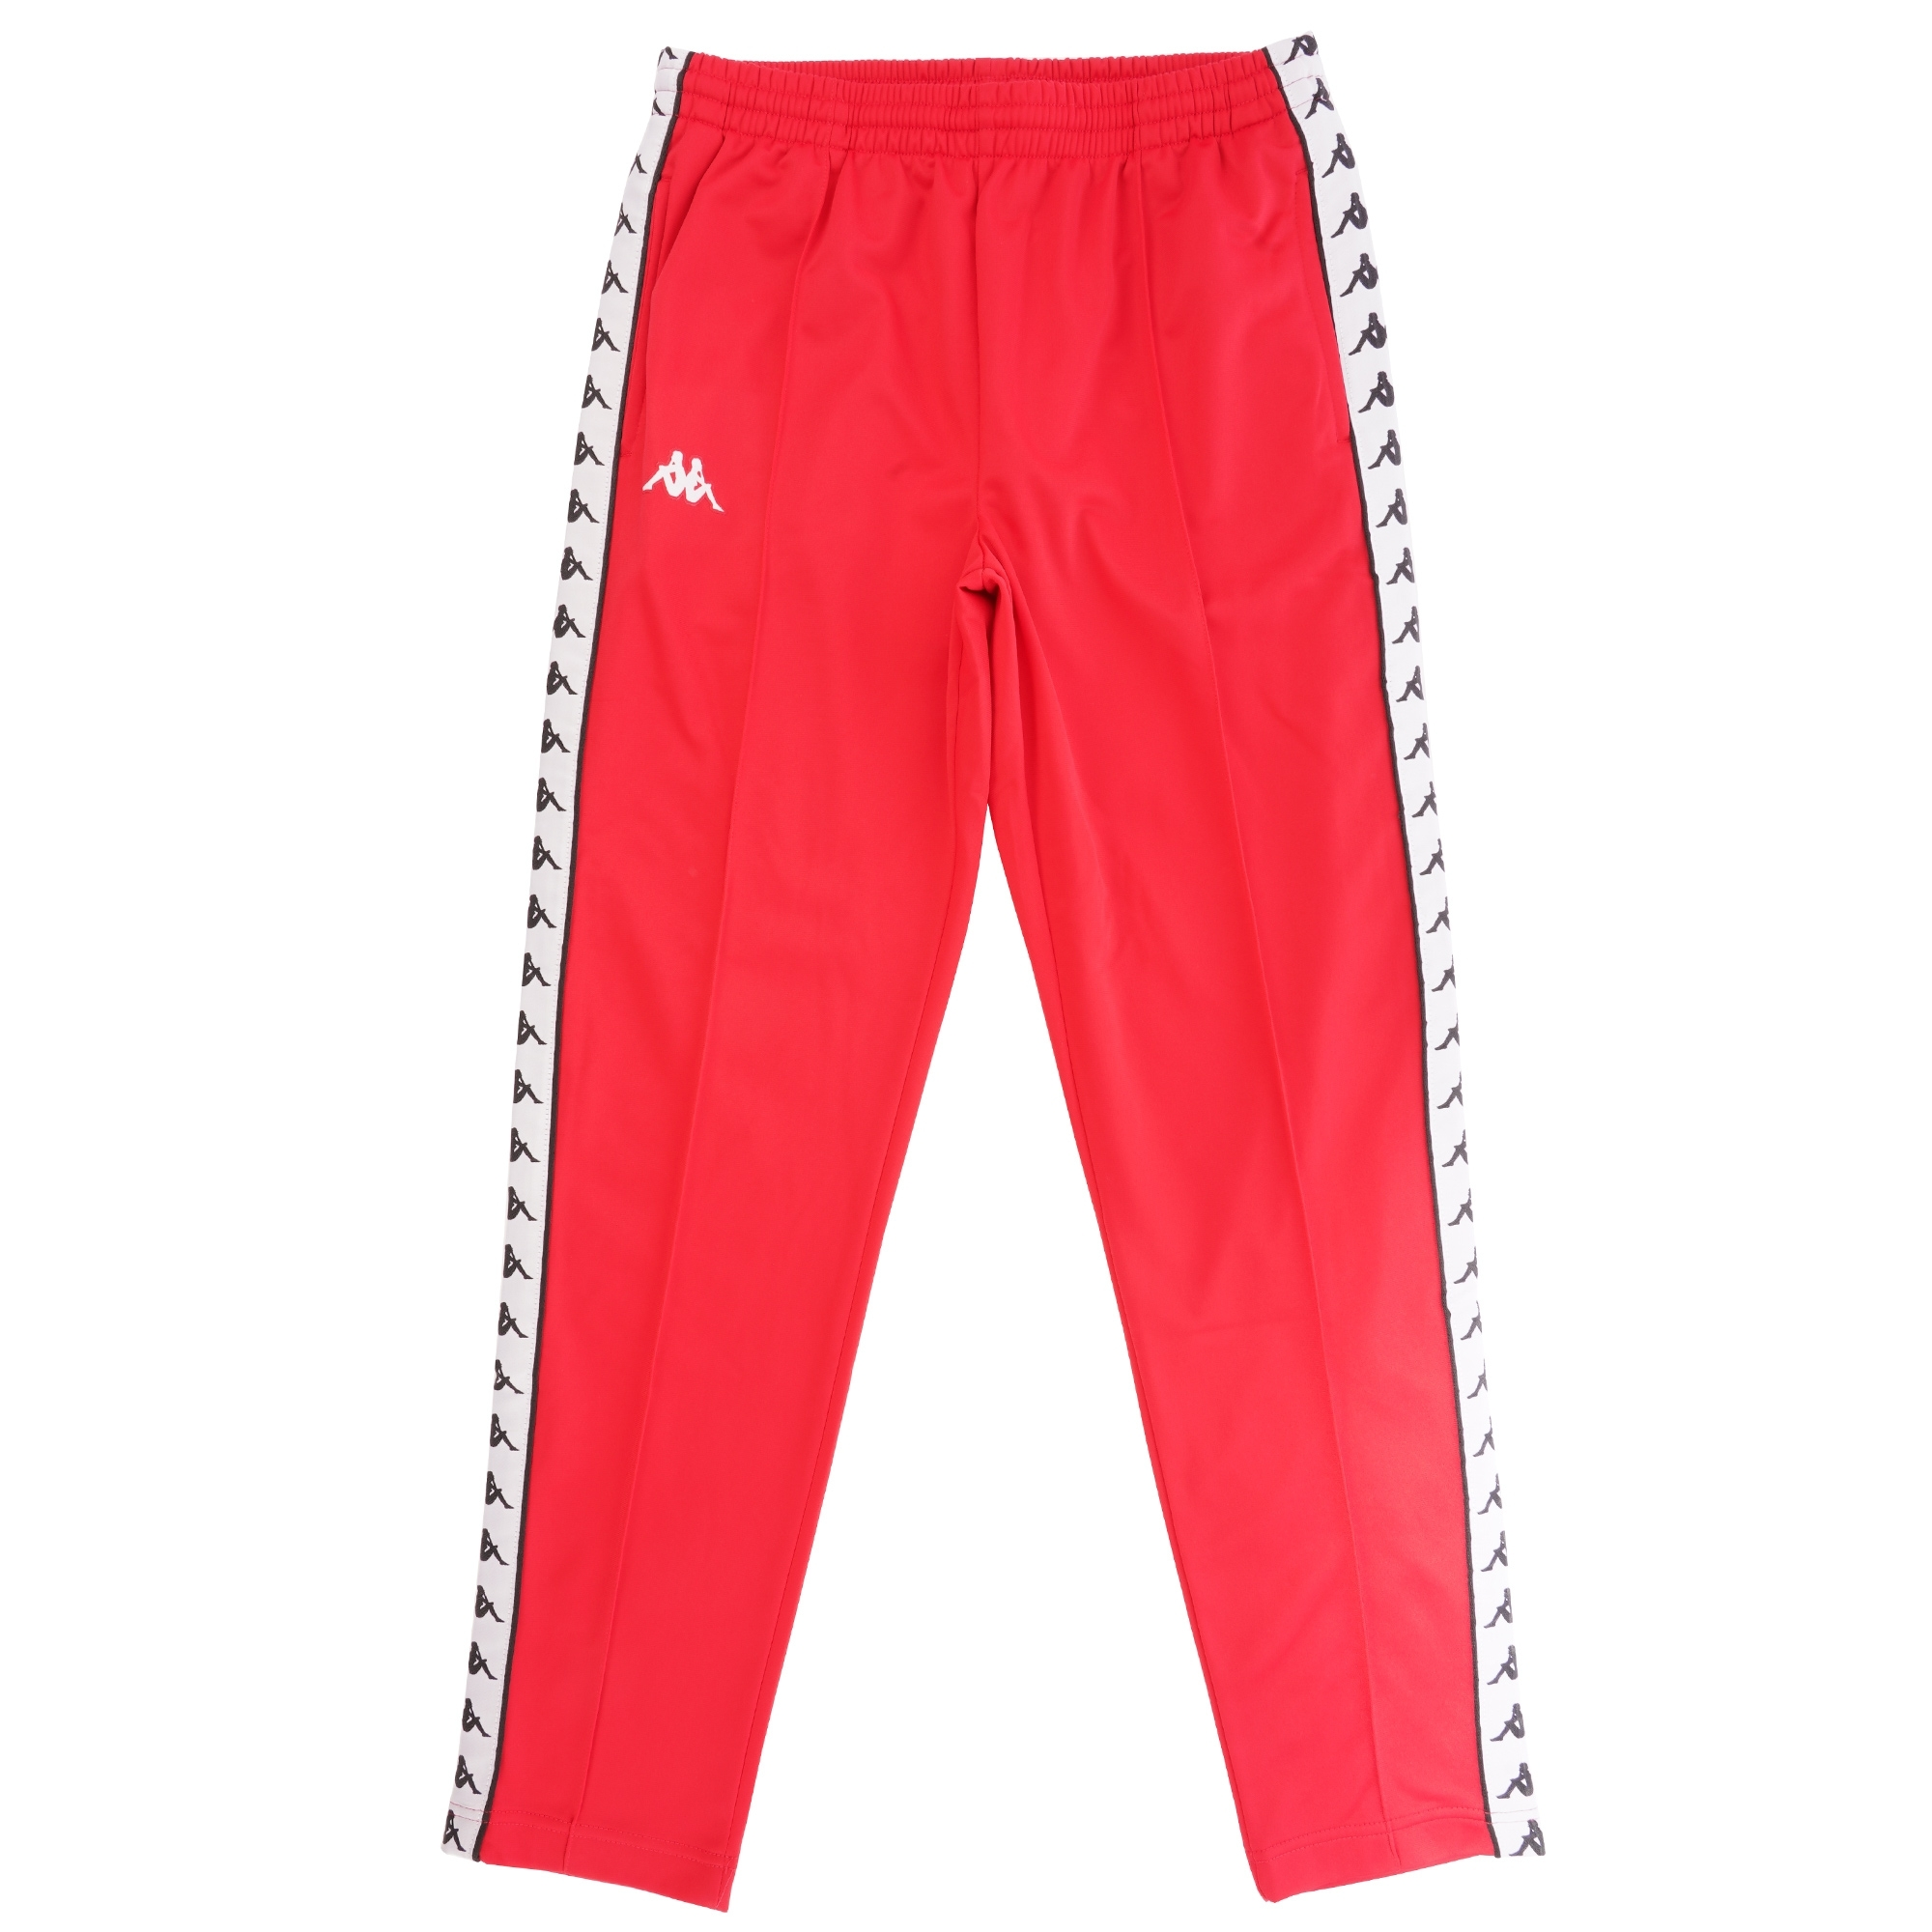 4c080eb3 222 Banda Astoria Slim Track Pant - Red & Black